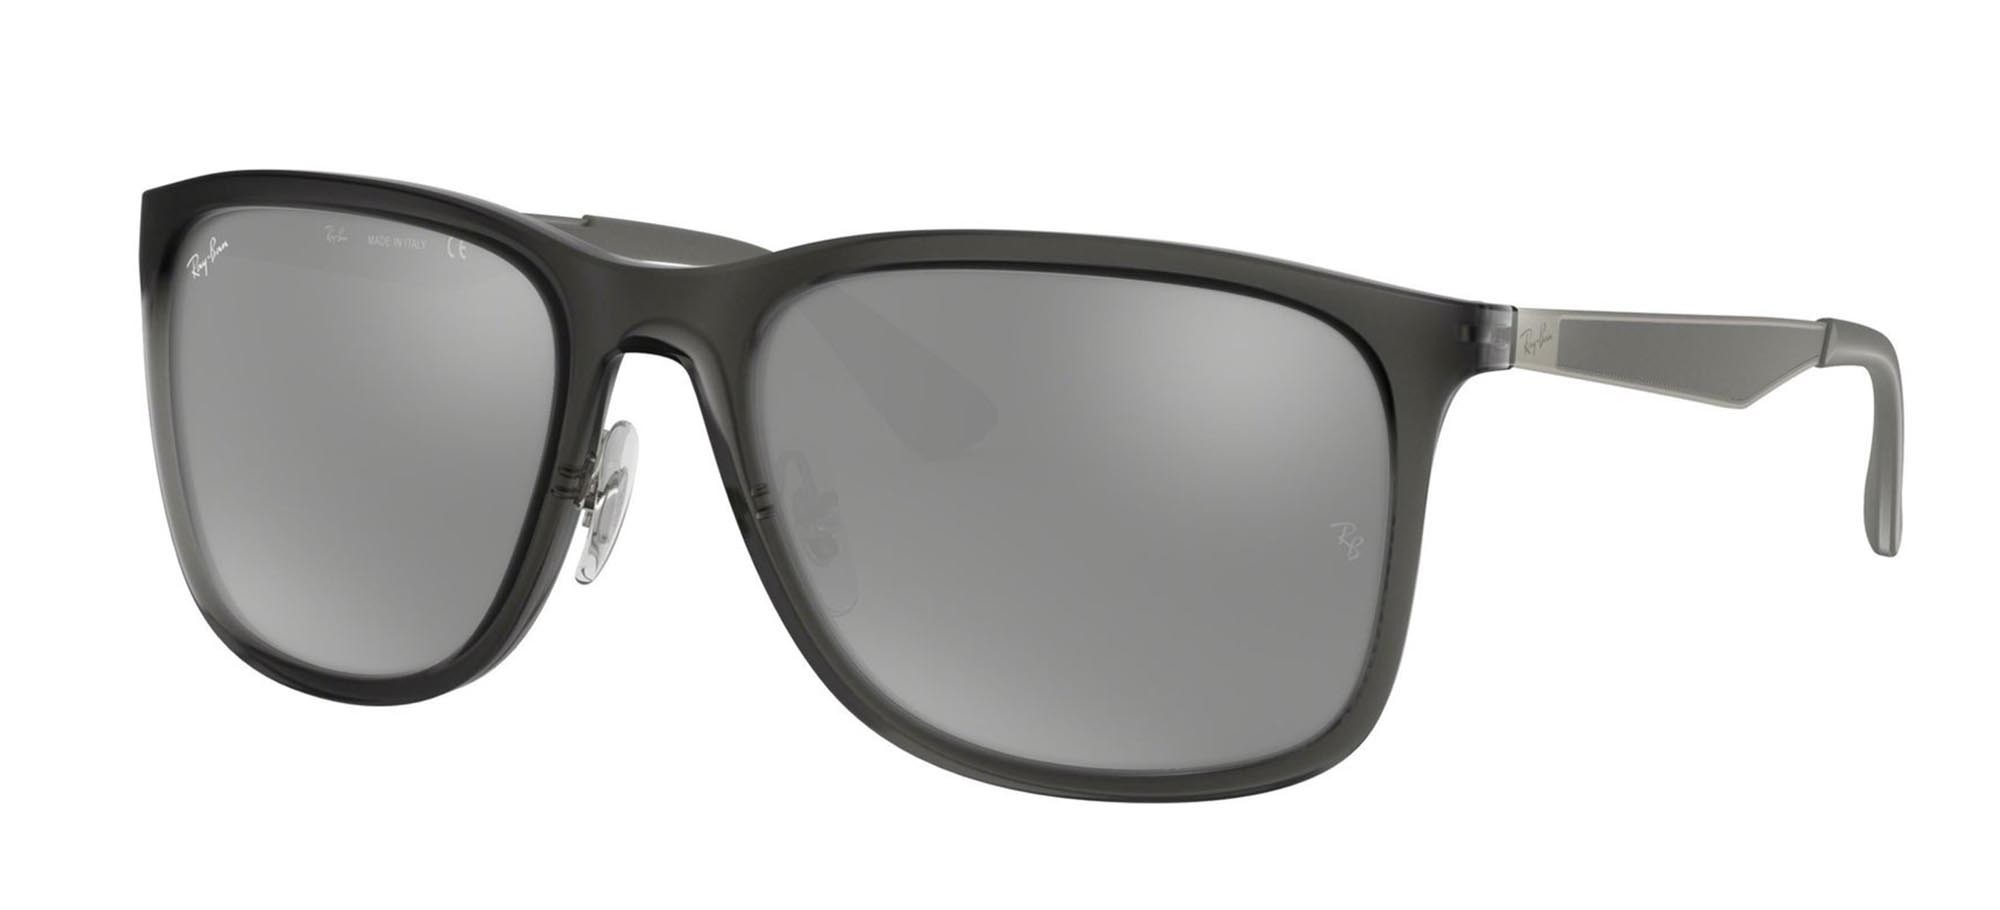 Ray-Ban solbriller RB 4313